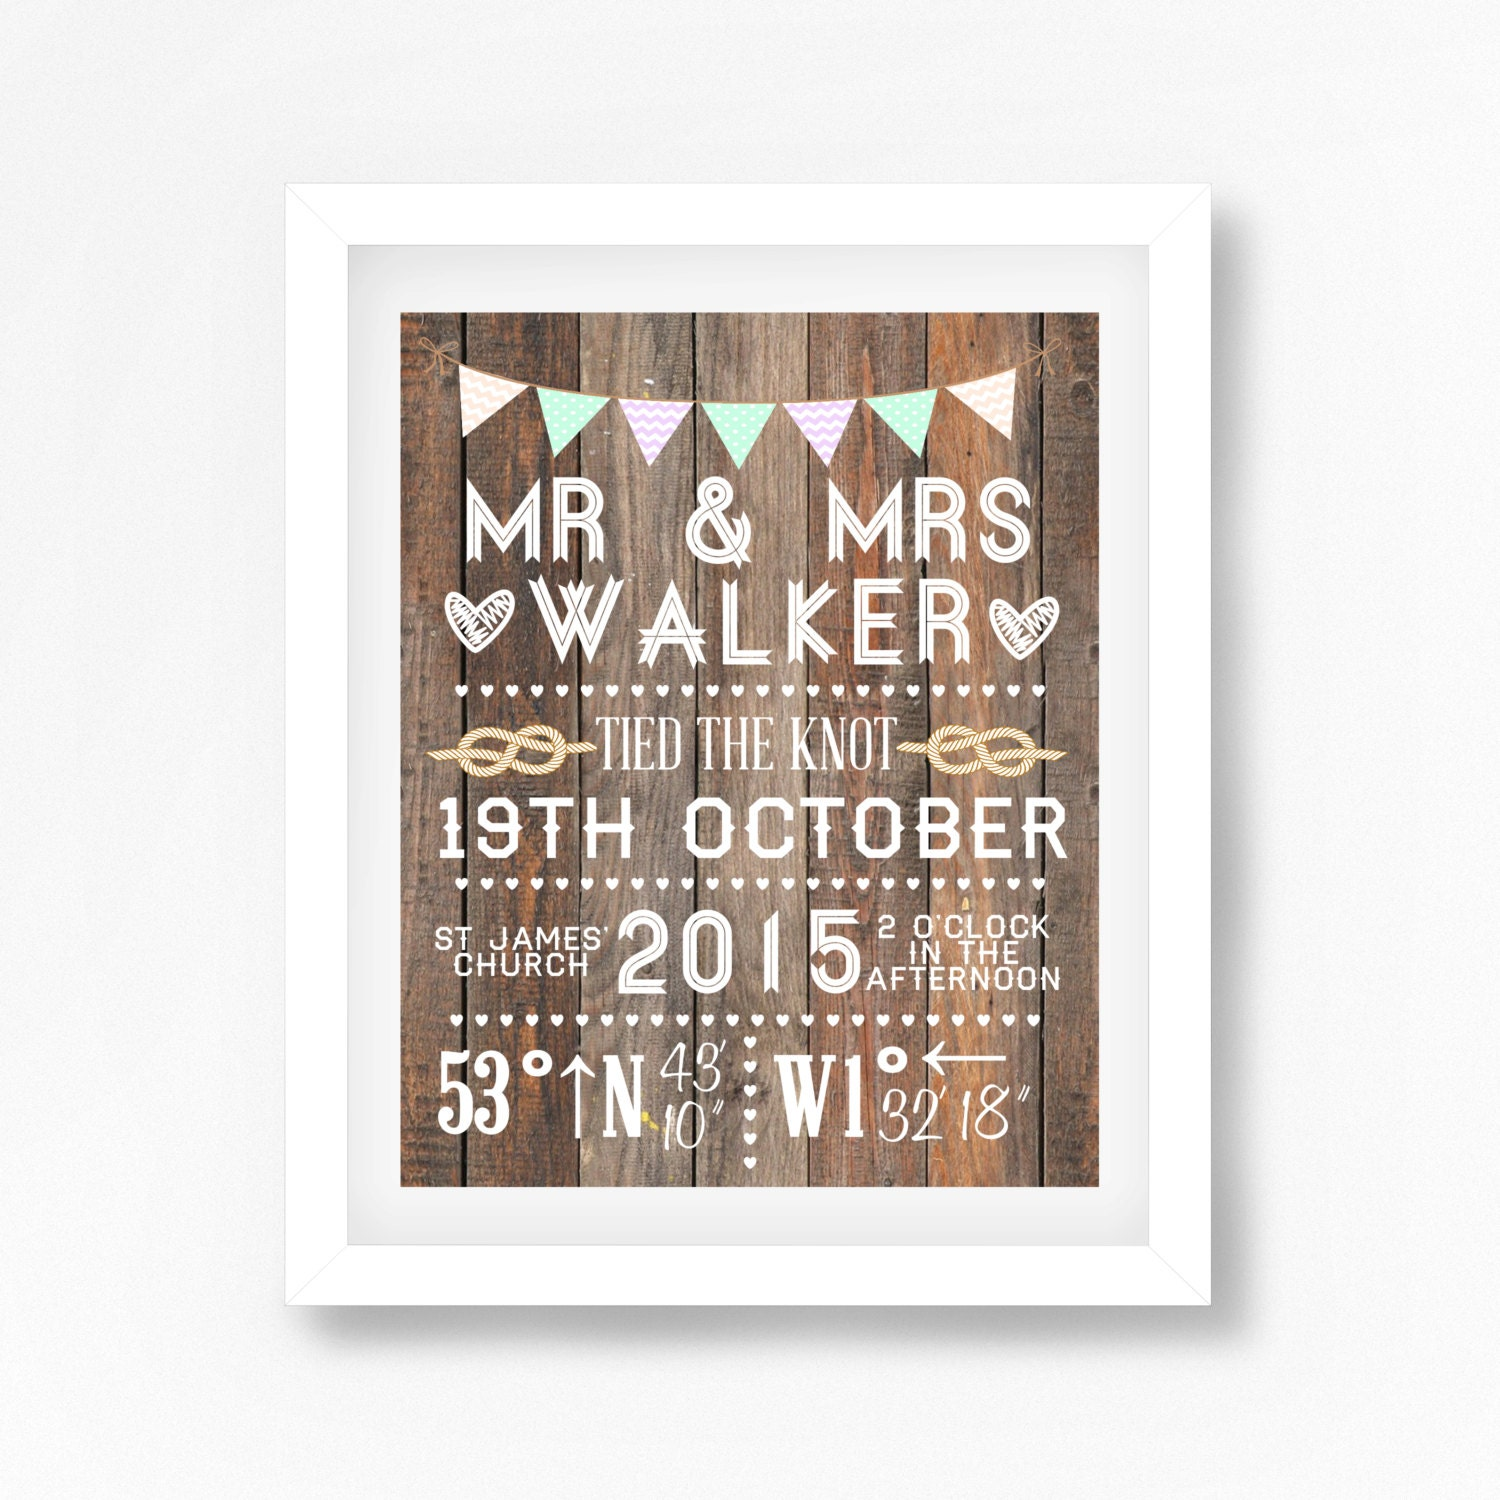 Gifts For Newly Weds: Gift For Newlyweds Wedding Gift For Couple Personalized Mr